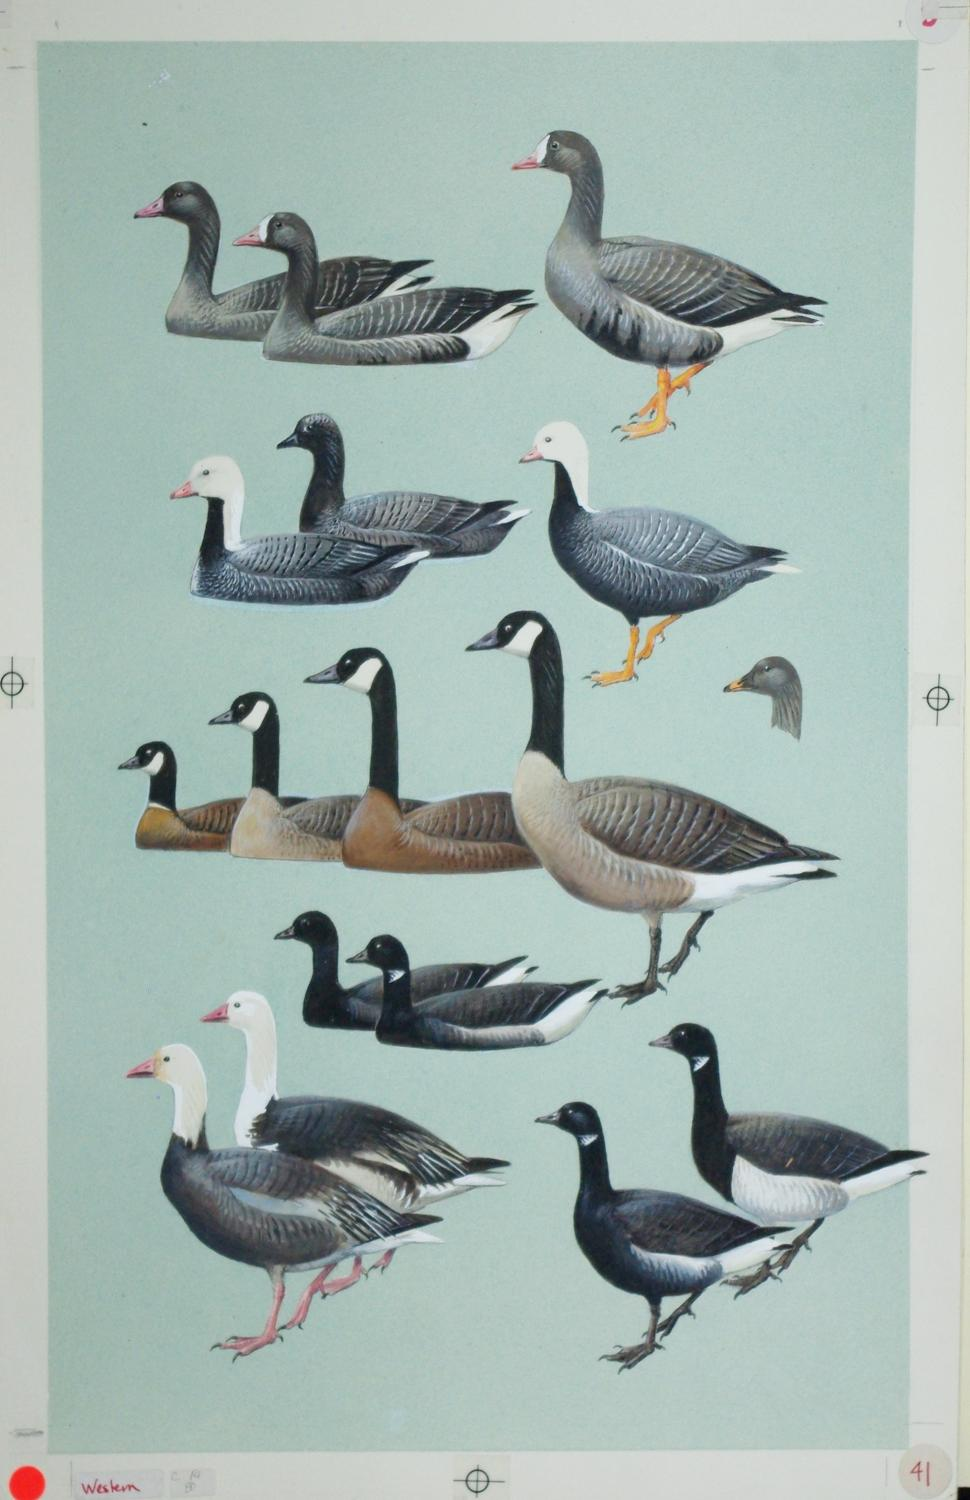 Geese, Brant: Roger Tory Peterson